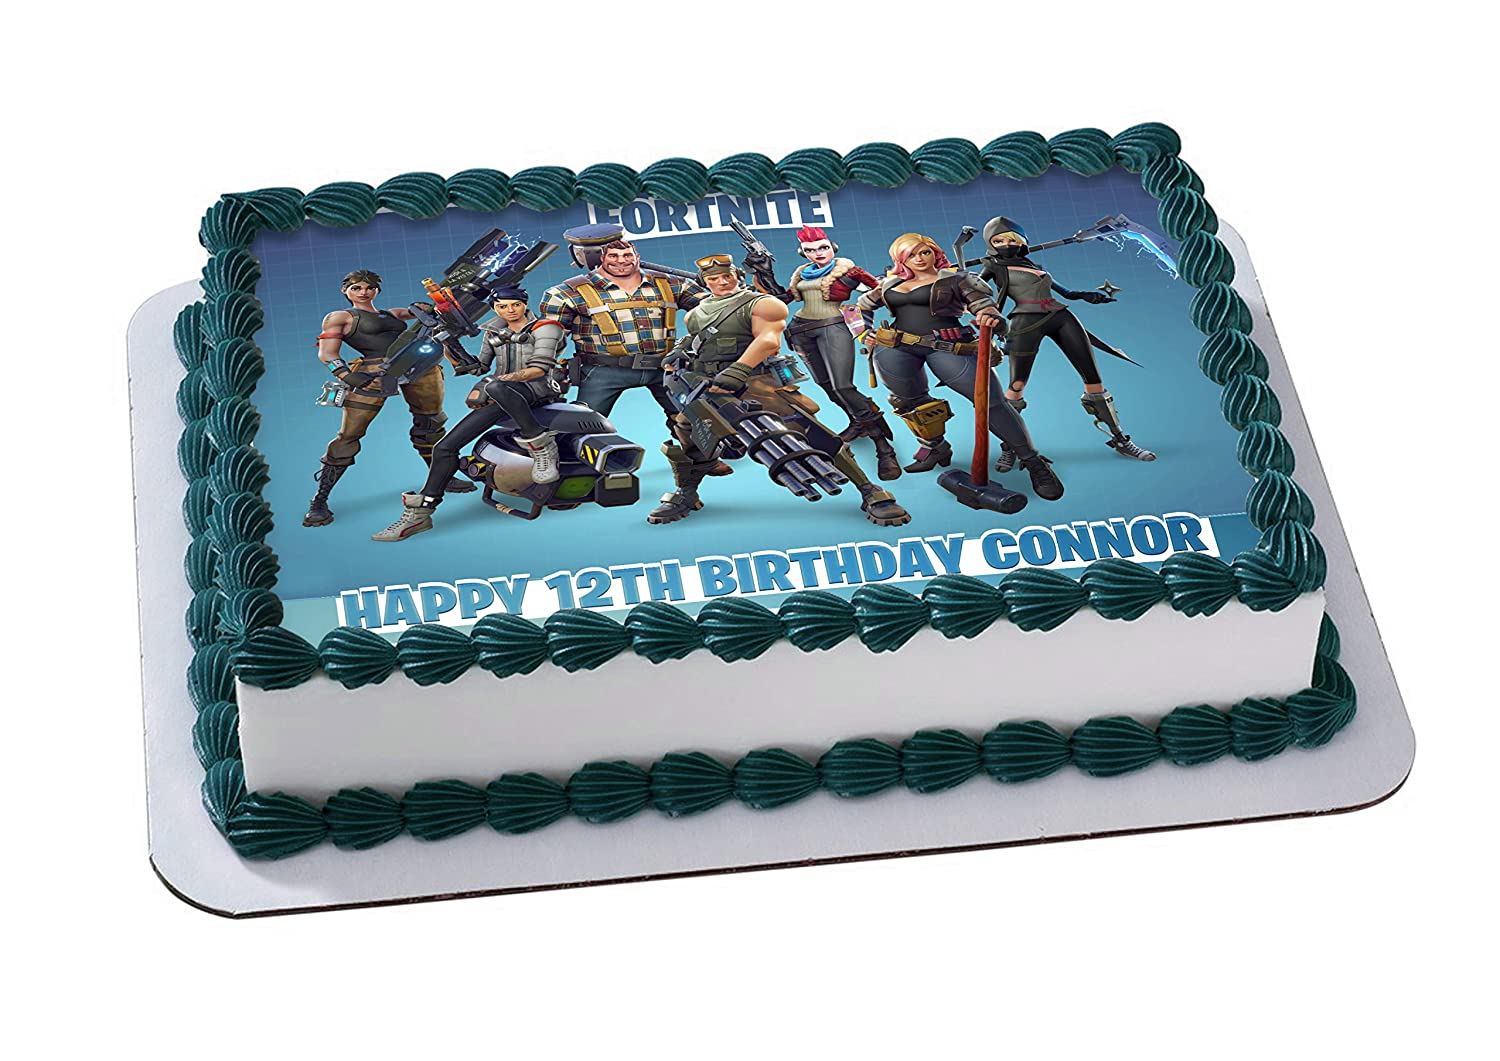 Fortnite Edible Image Cake Topper Personalized Icing Sugar Paper A4